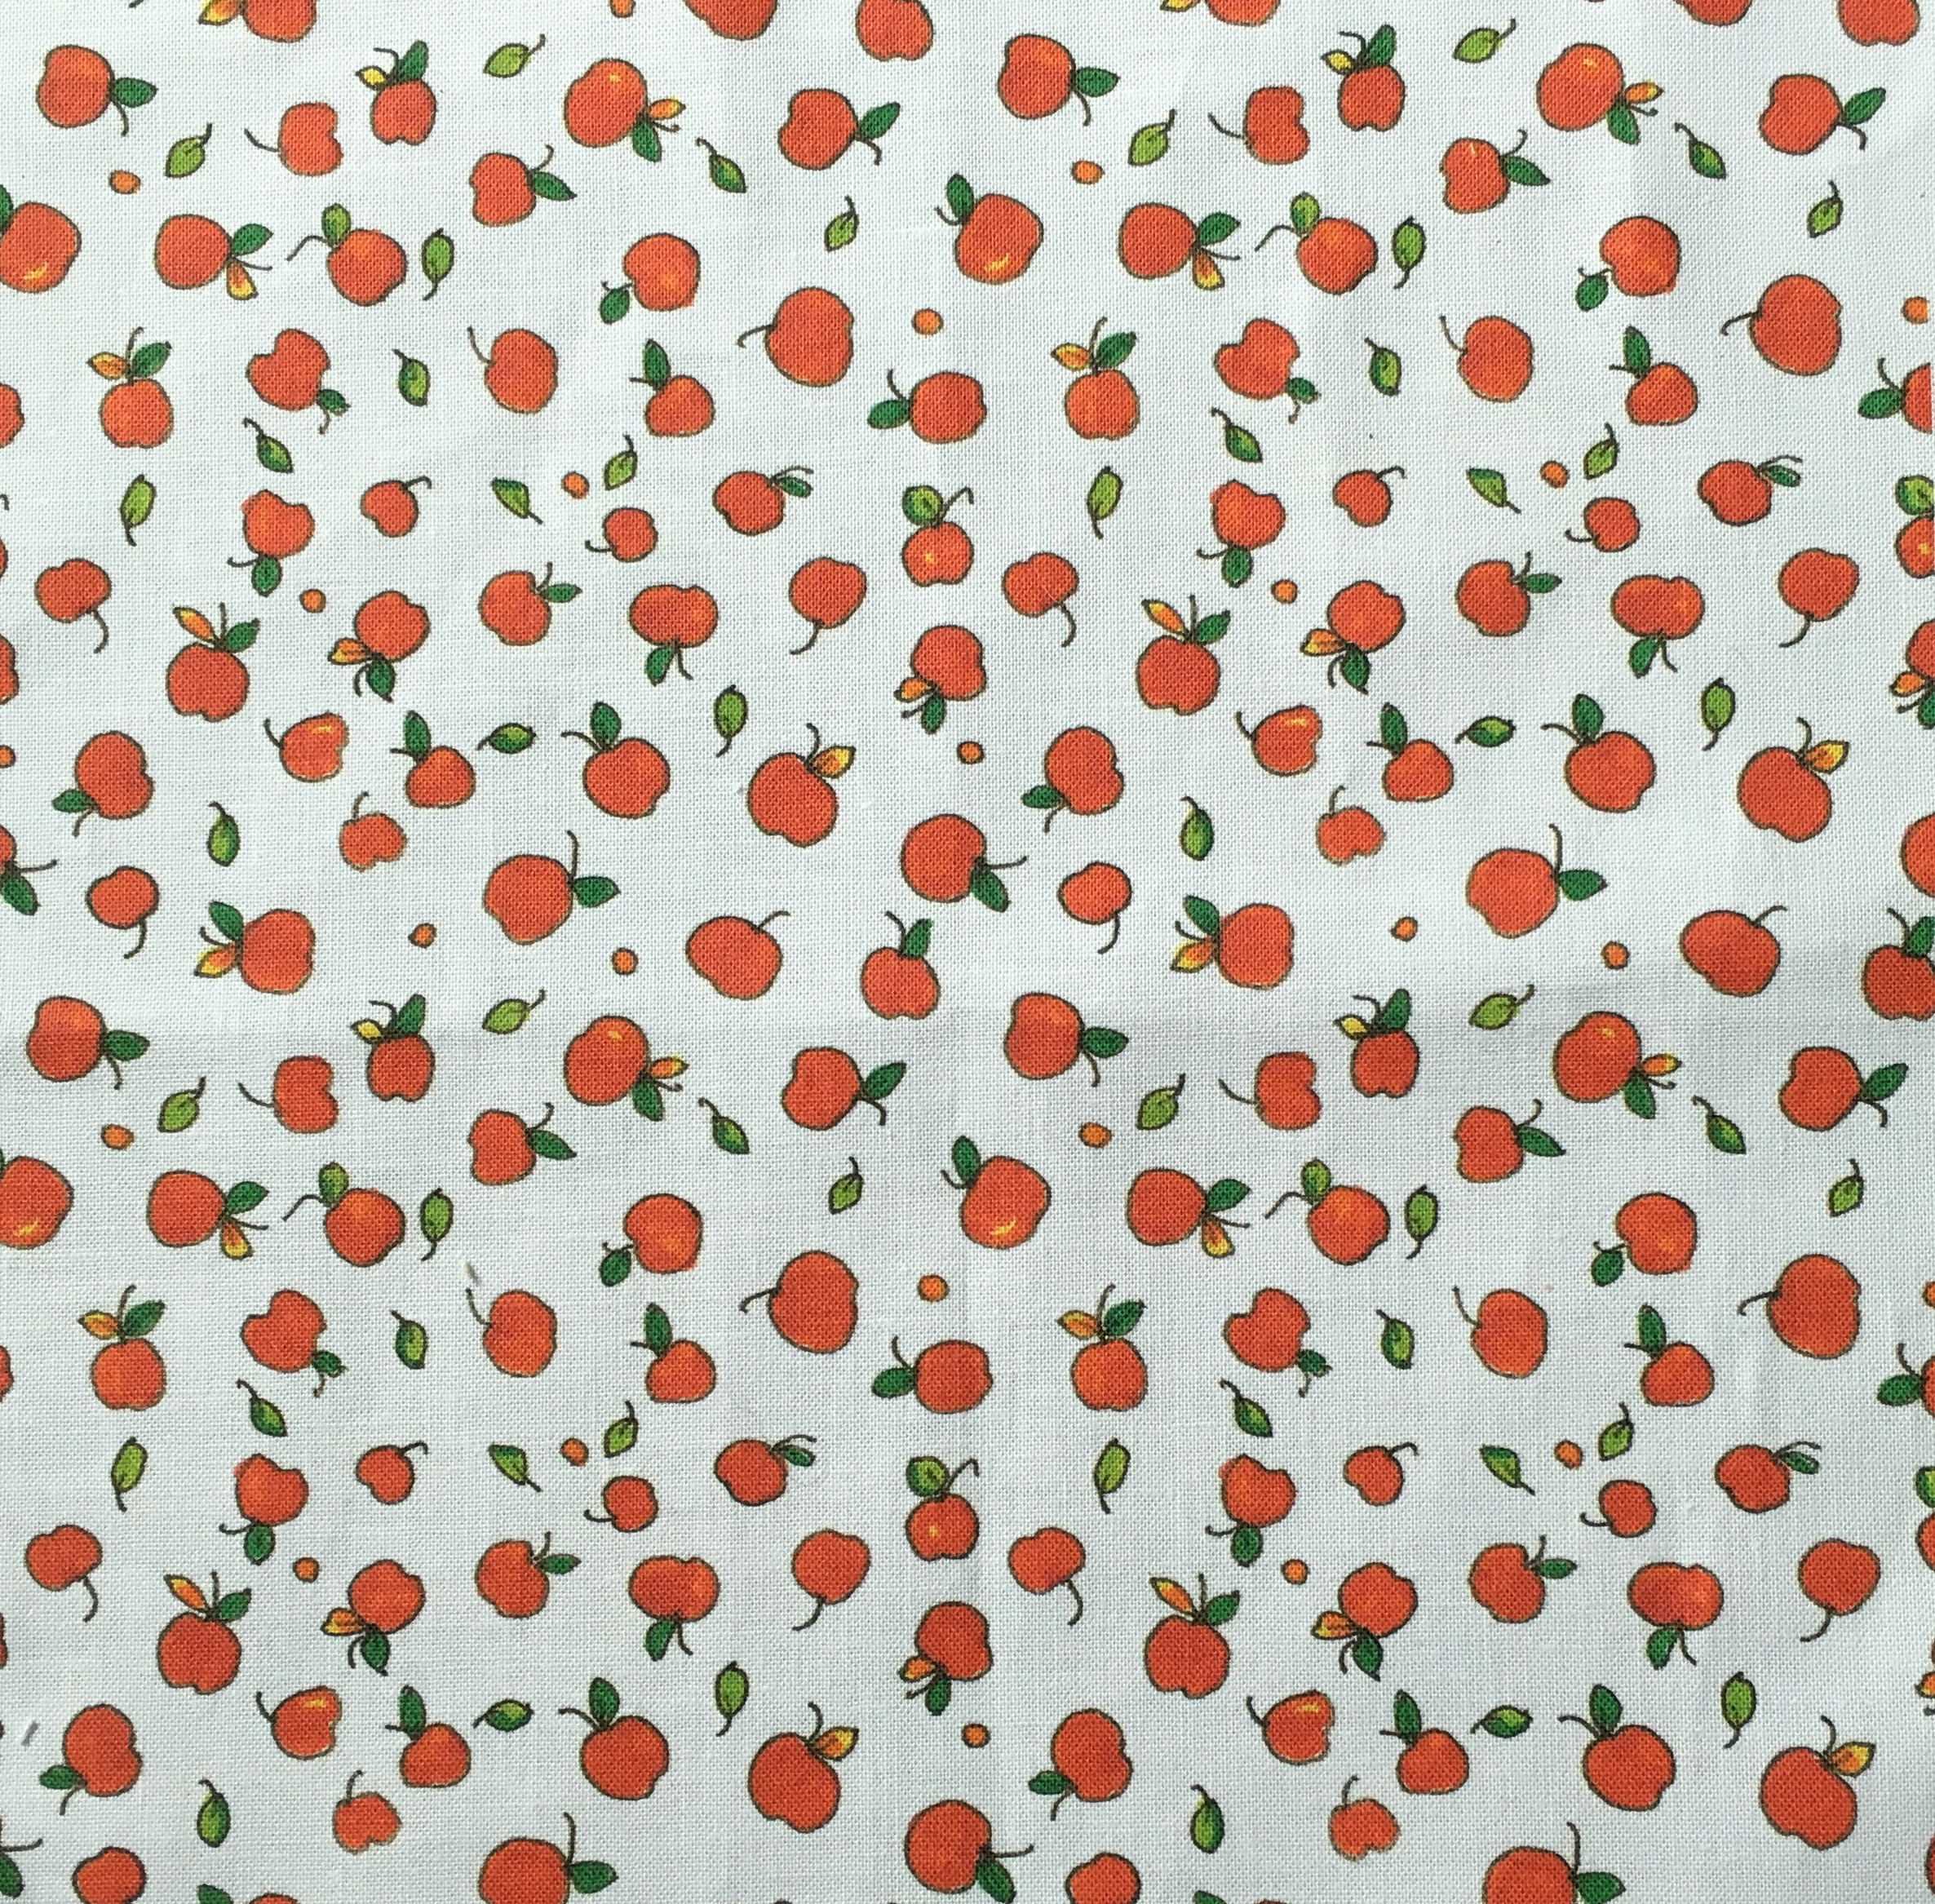 Fabric Tossed Apples and Dots printed.jpg